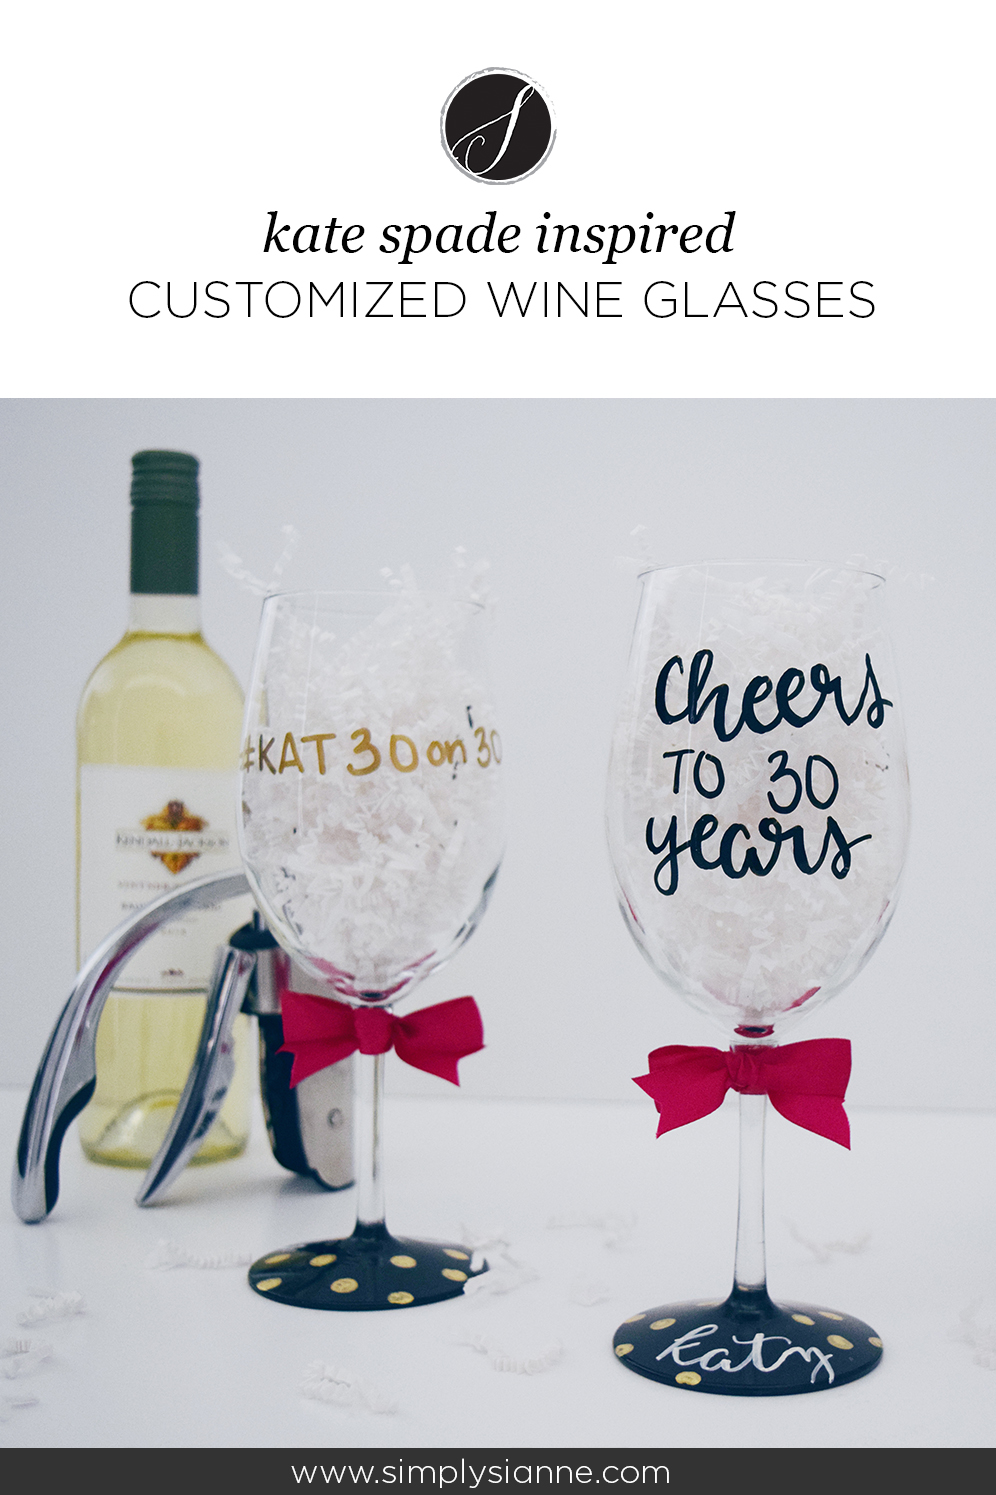 kate spade inspired customized wine glasses